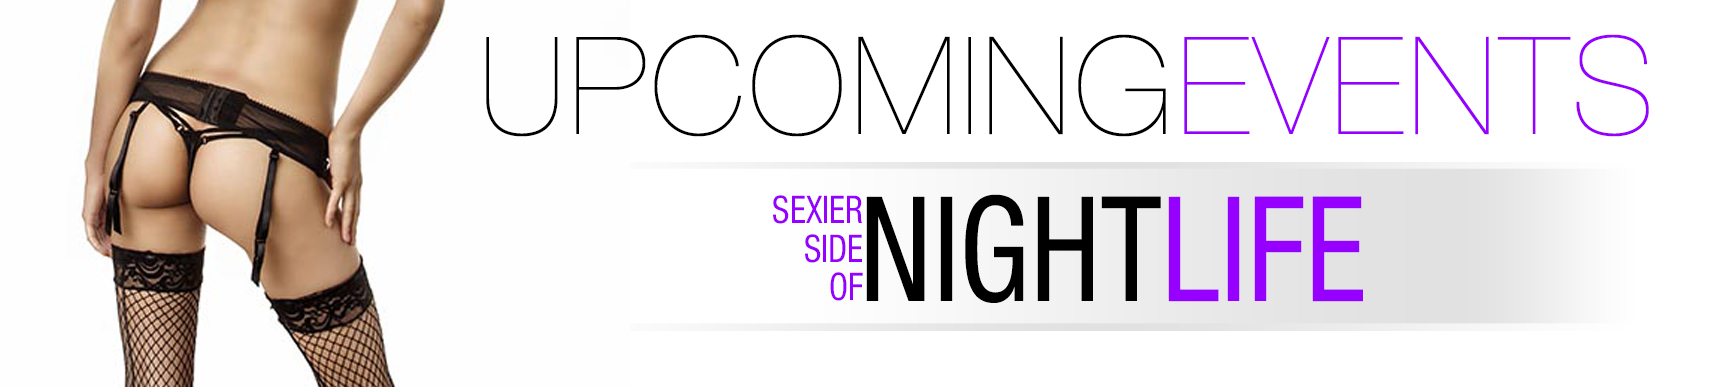 Upcoming Events   Rockstar Strip Club Connecticut   Rock & Royalty Clubs